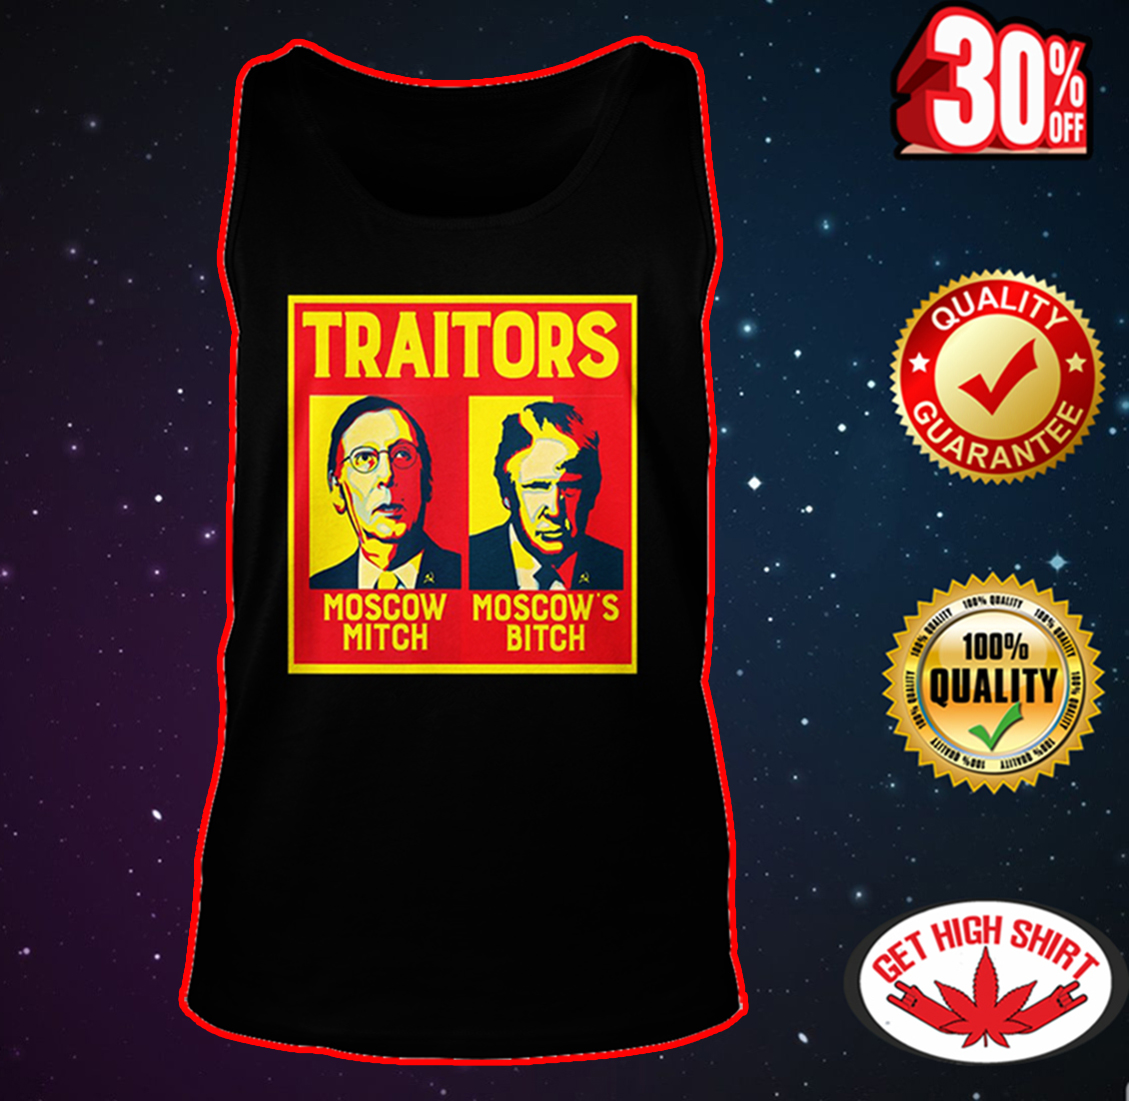 Traitors Ditch Moscow Mitch tank top